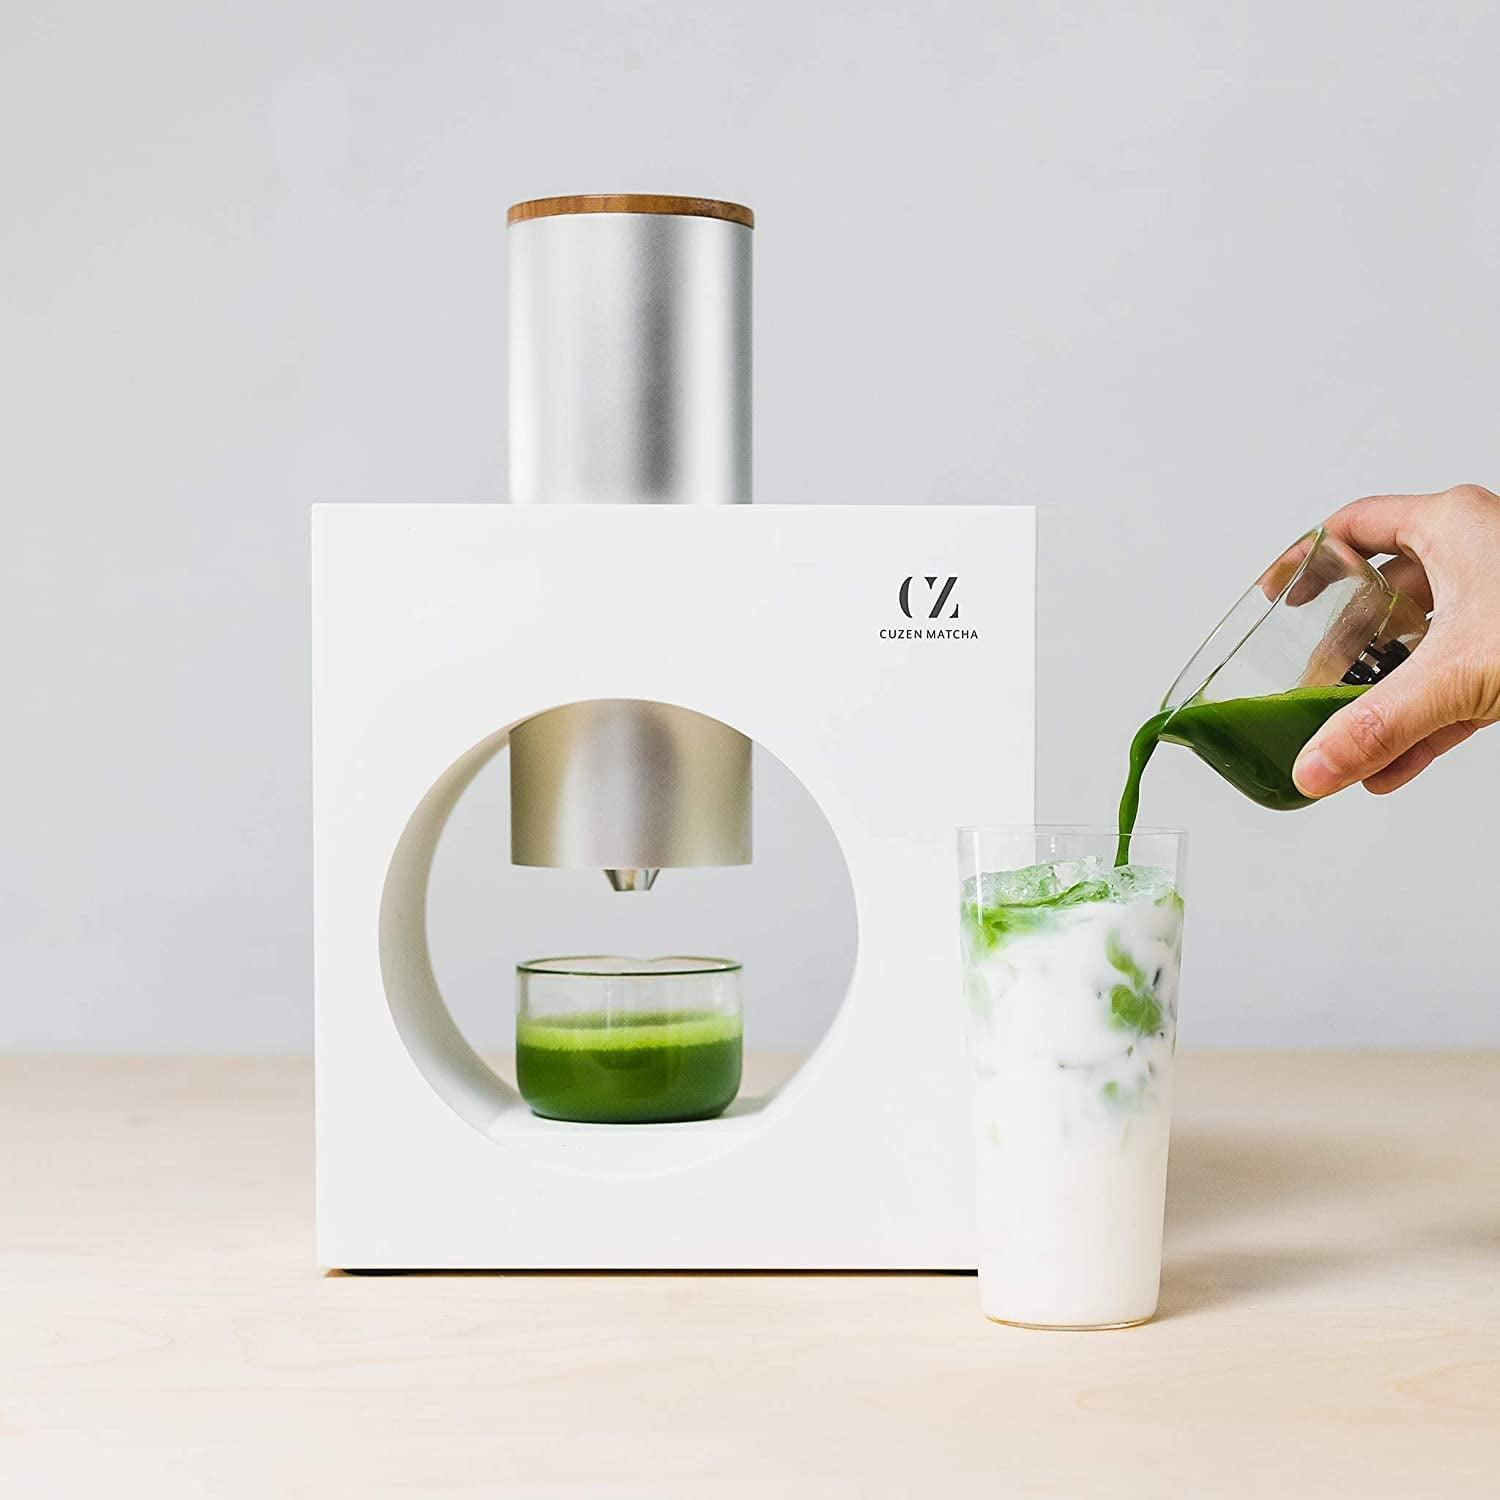 The Cuzen Matcha Maker Was Named One of the Best Inventions of 2020 - I Got to Test It Out